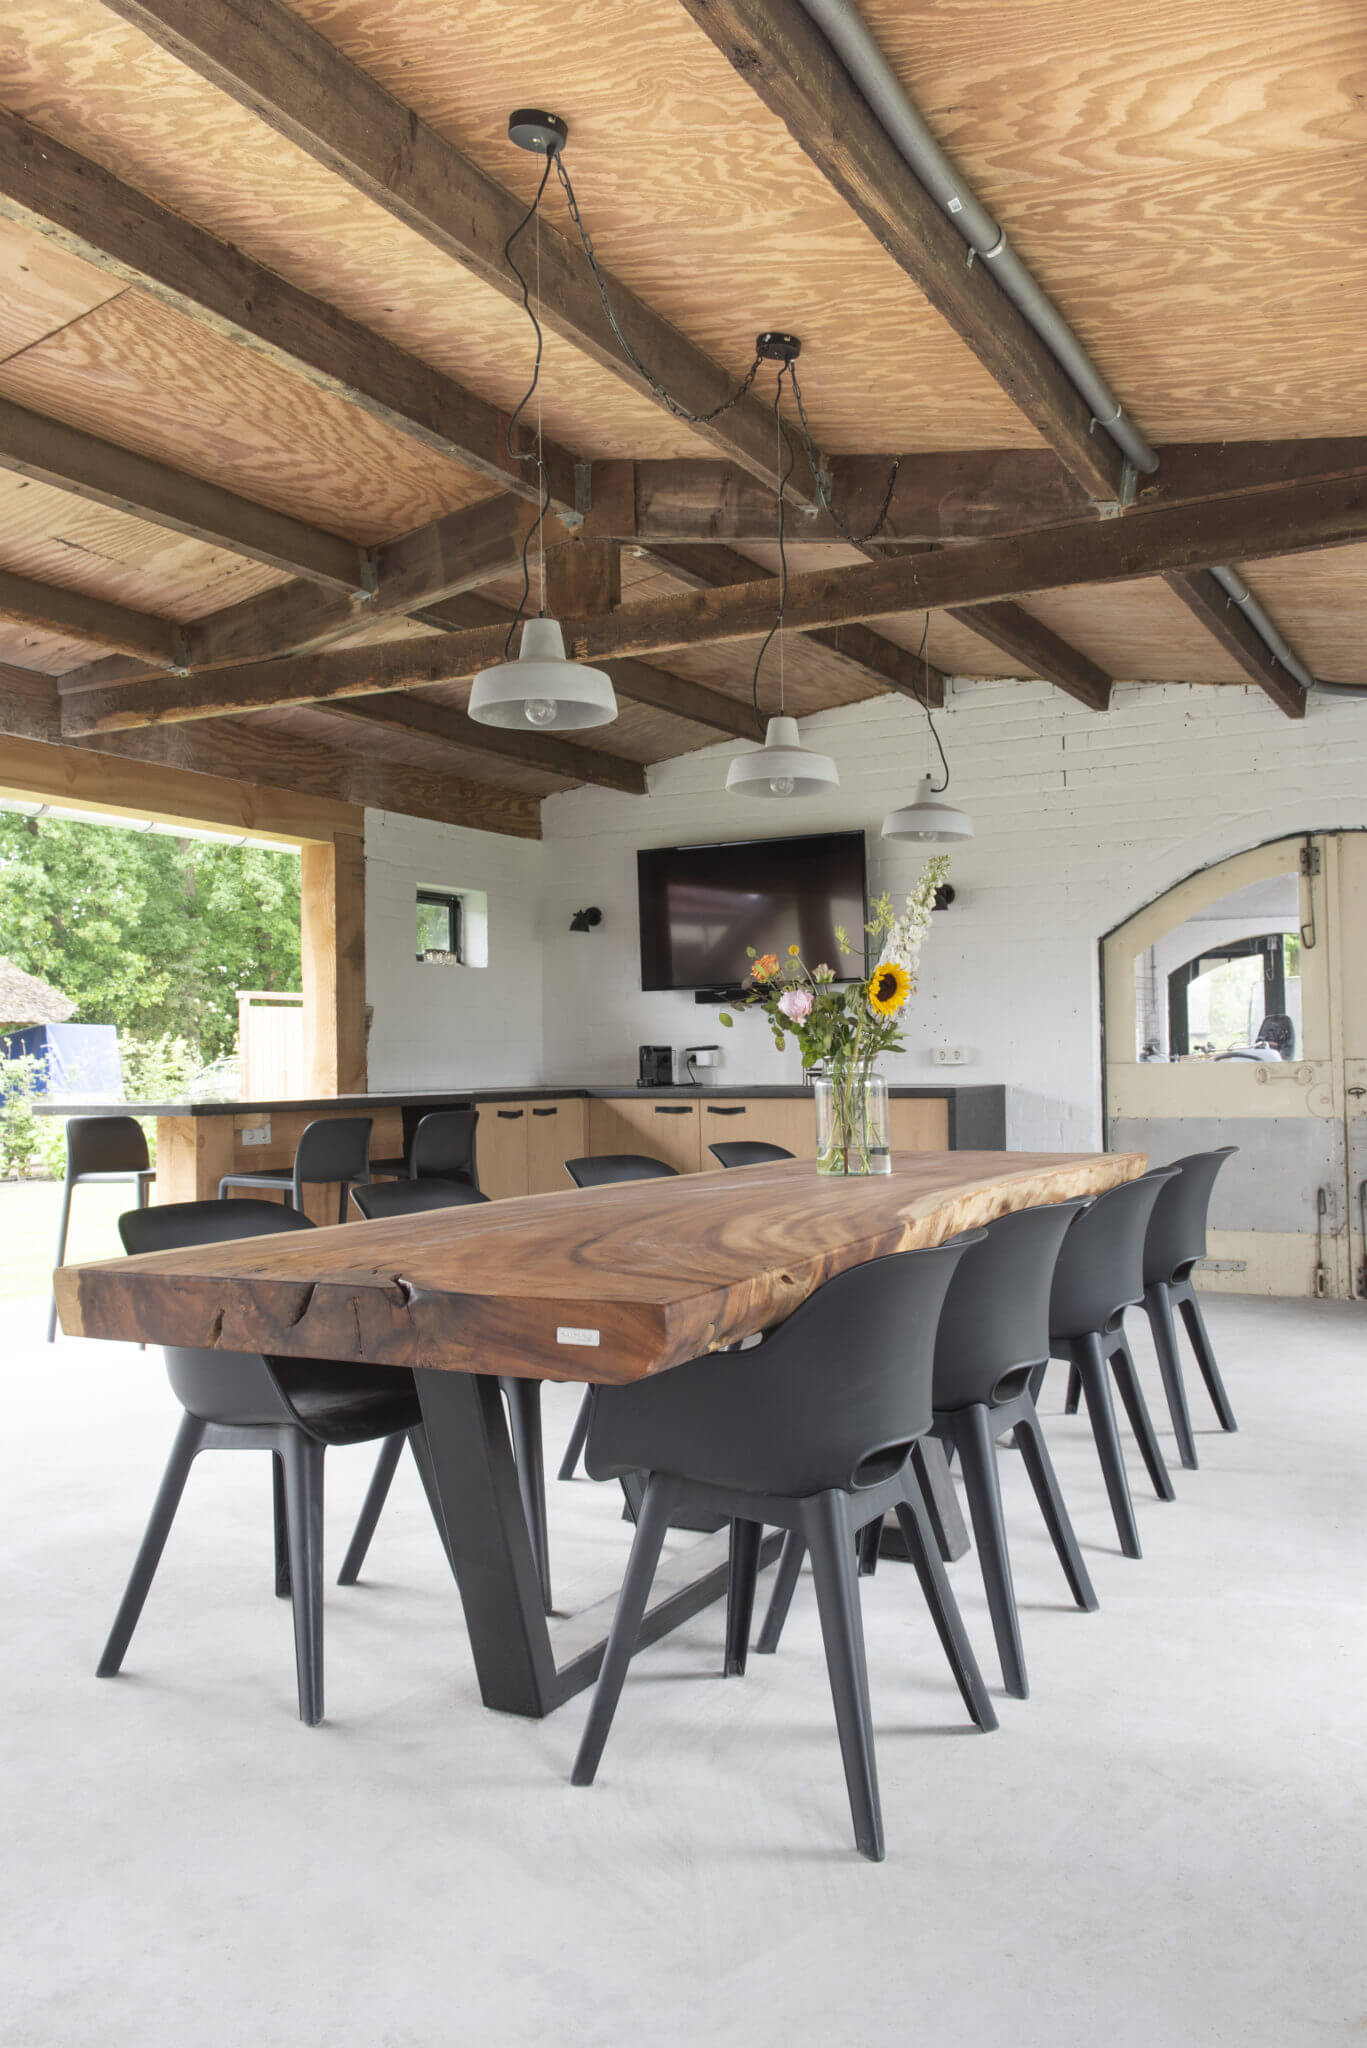 SOLID WOOD TREE CUT RECLAIMED WOOD DINING TABLE DESIGN IDEAS